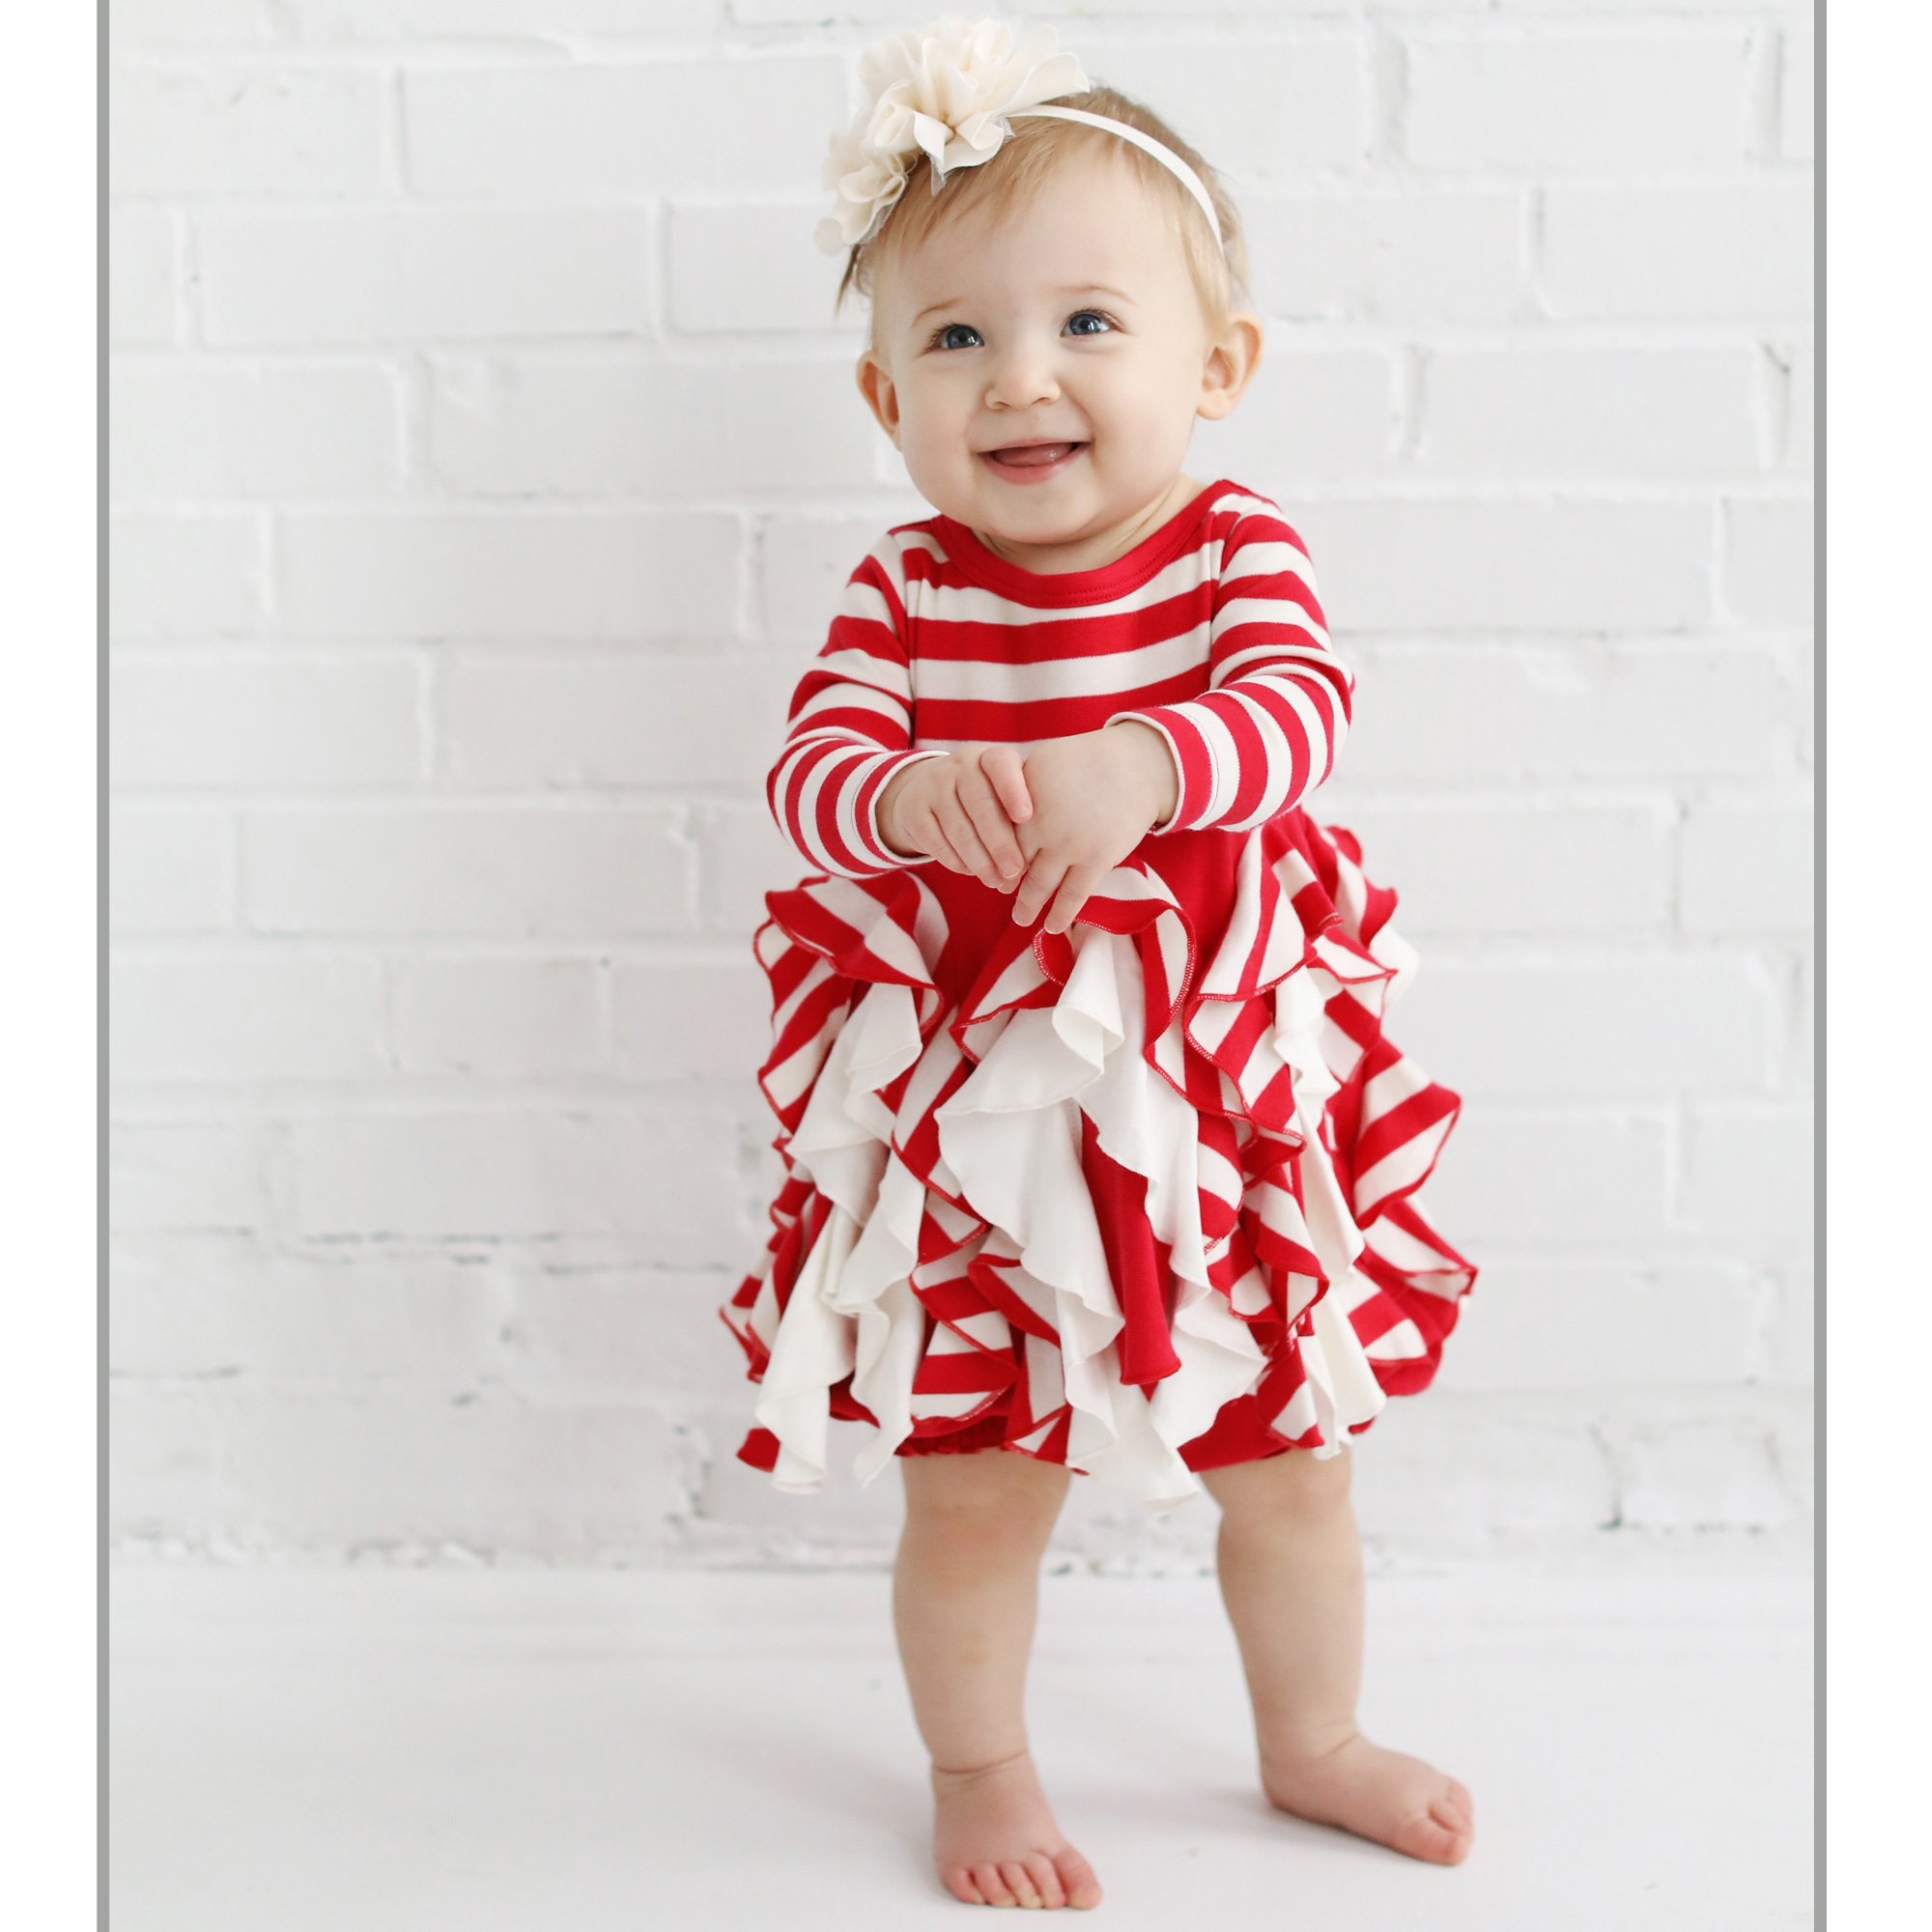 Beautiful Christmas Dresses for Toddlers | Baby Girl Christmas Dress | Baby Bling Street Baby Fashion Boutique